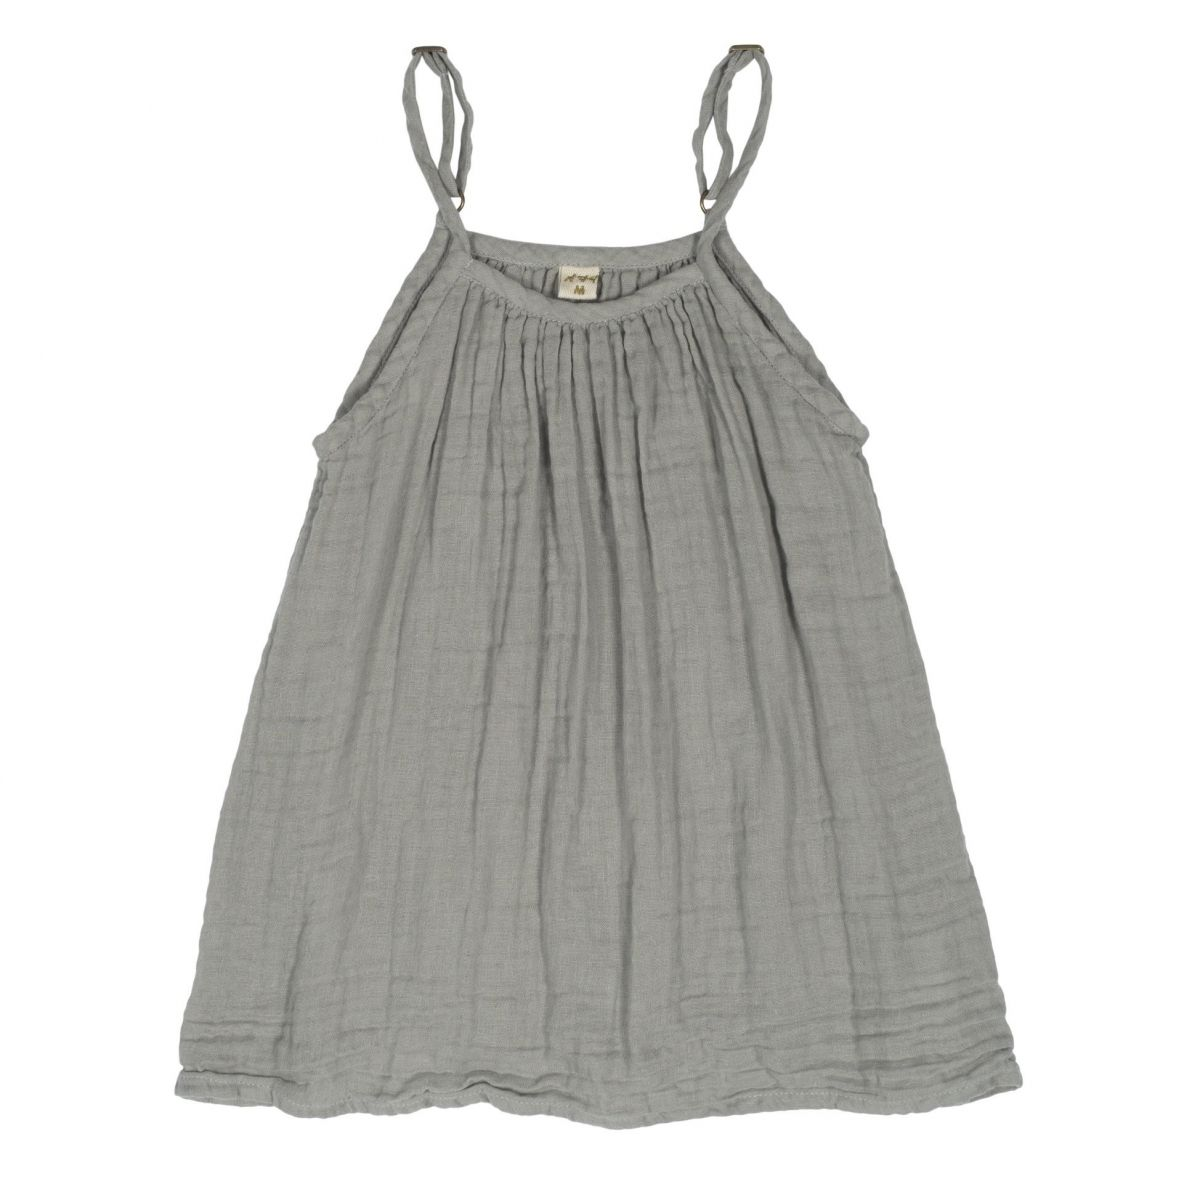 Dress Mia silver grey - Numero 74